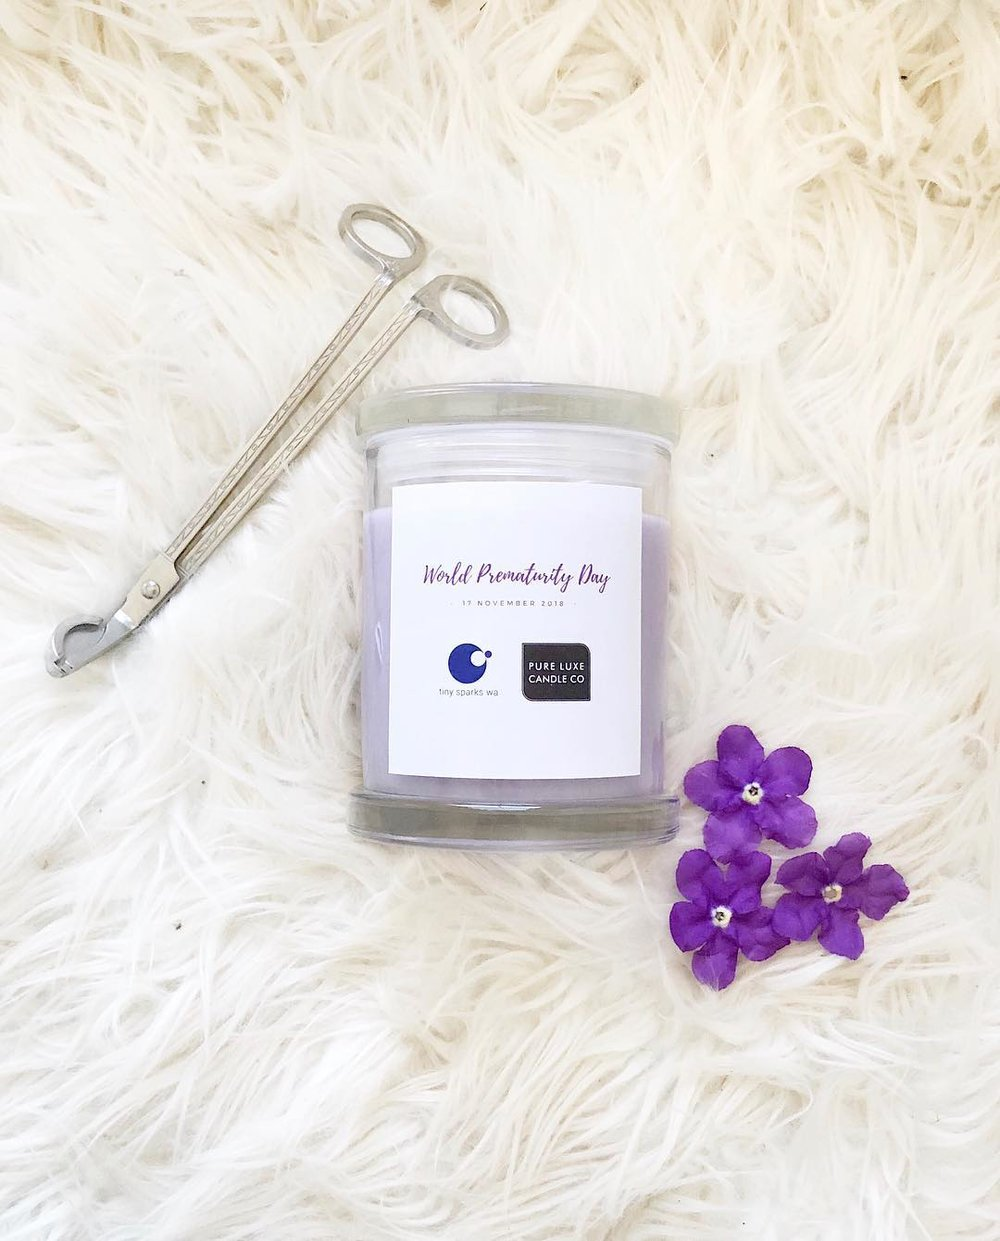 Pure Luxe Candle Co - Use discount code 'LIGHTITUPPURPLE' for 15% off this exclusive World Prematurity Day candle and they are donating $2 from every sale.